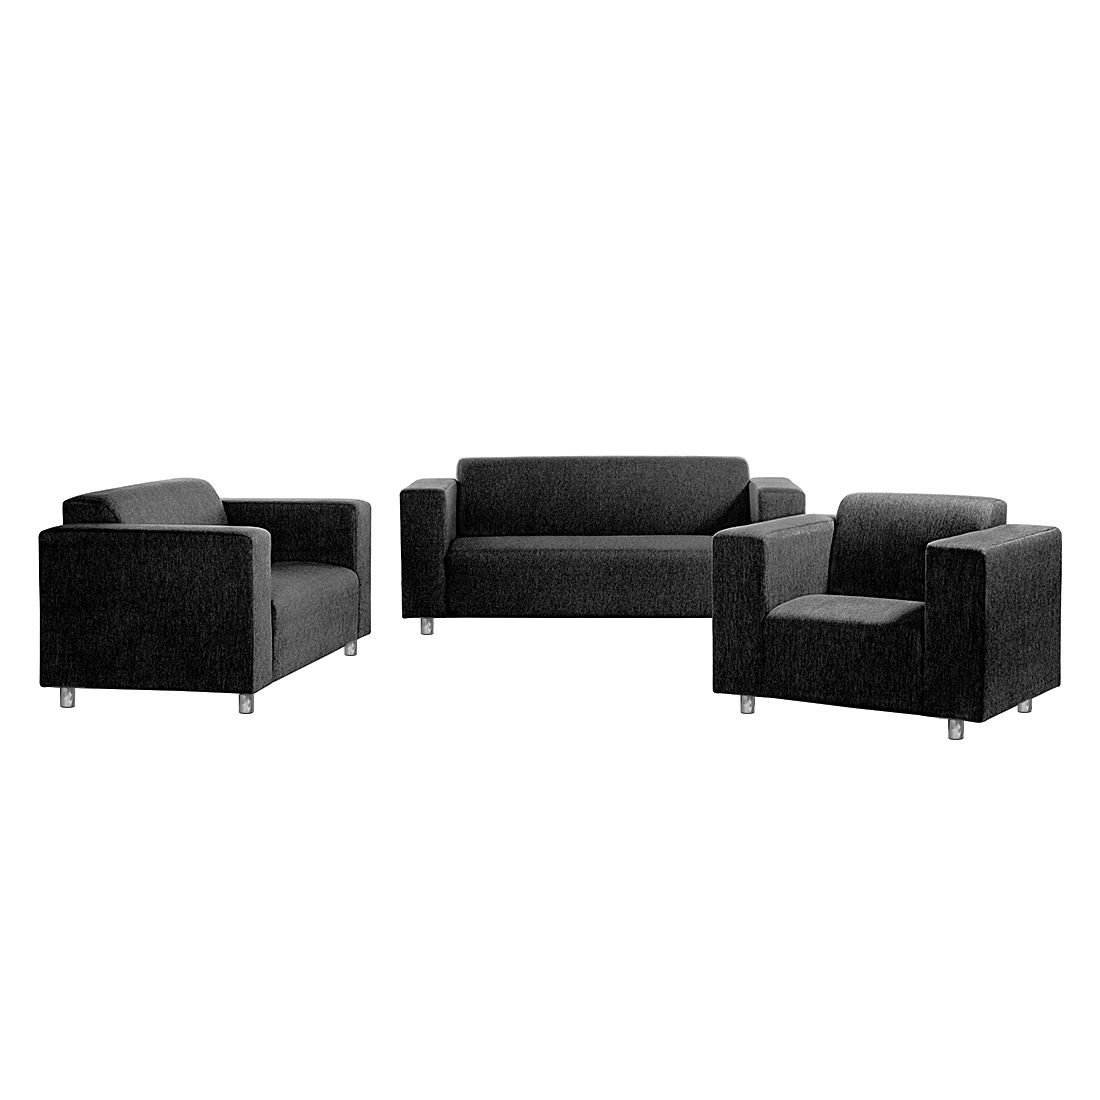 polstergarnitur oslo 3 2 1 strukturstoff anthrazit. Black Bedroom Furniture Sets. Home Design Ideas